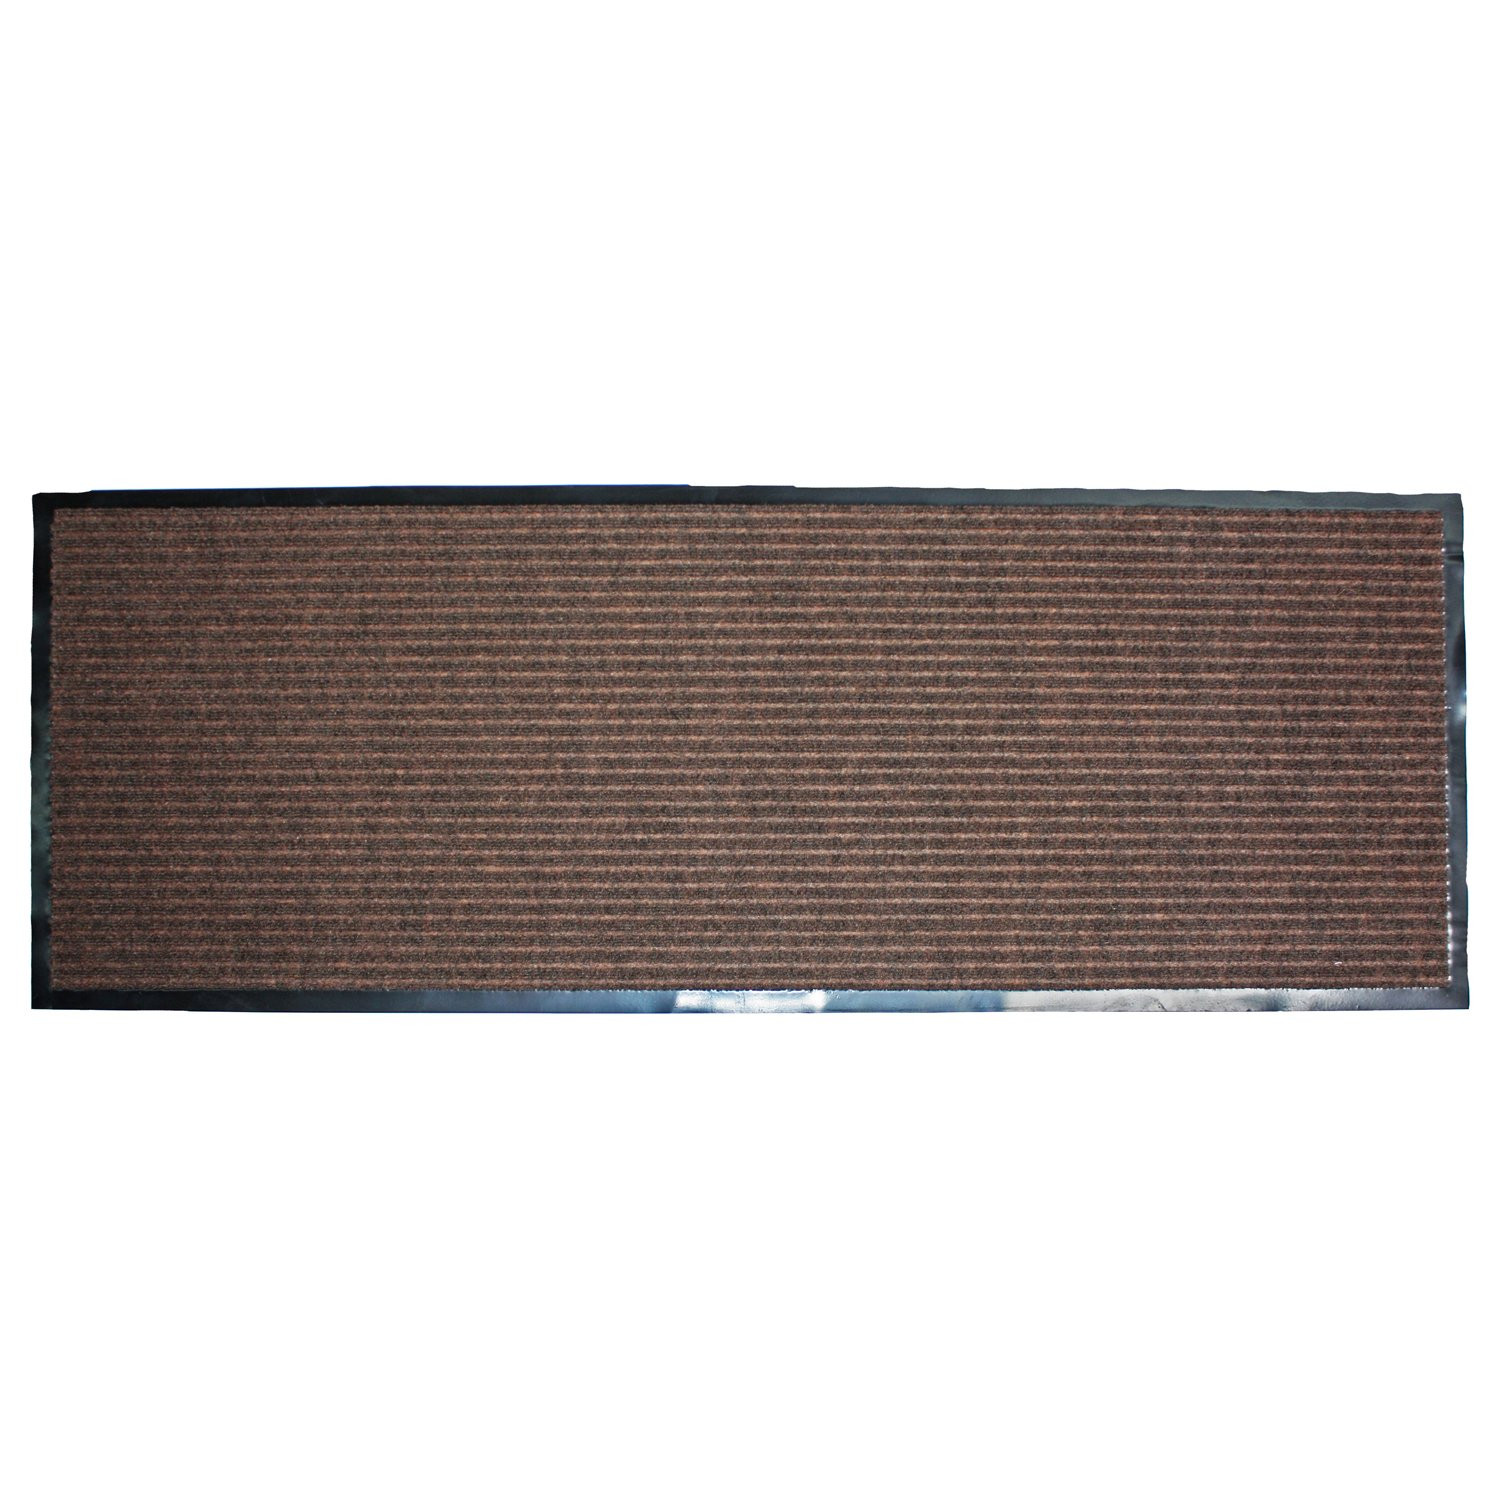 Rubber floor mats for house - J M Home Fashions Ribbed Runner Utility Mat 22 Inch By 60 Inch Brown